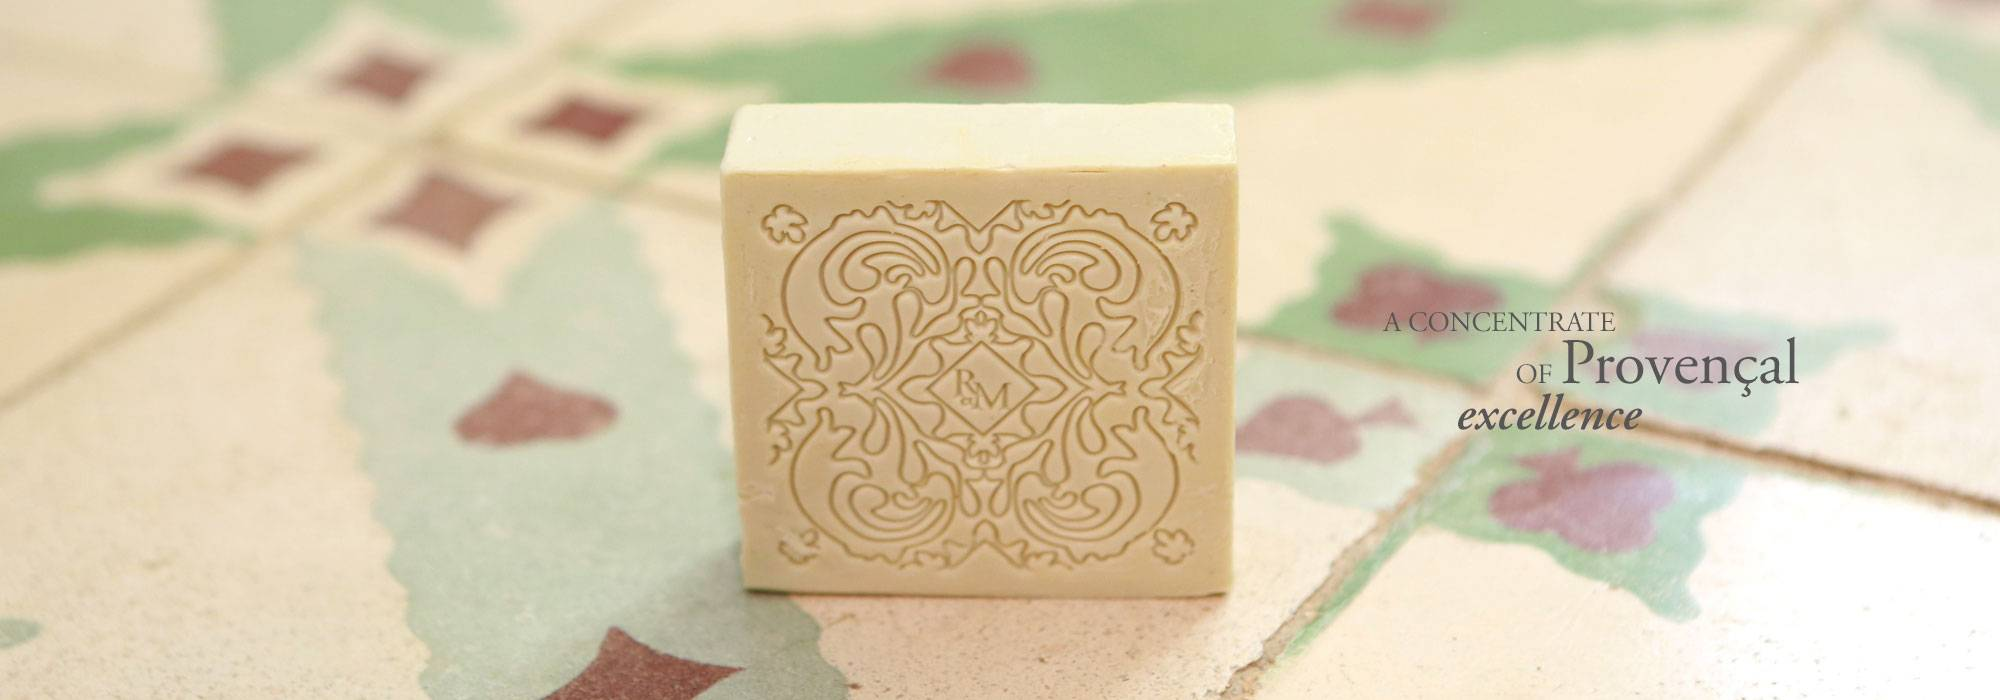 Discover our engraved soaps